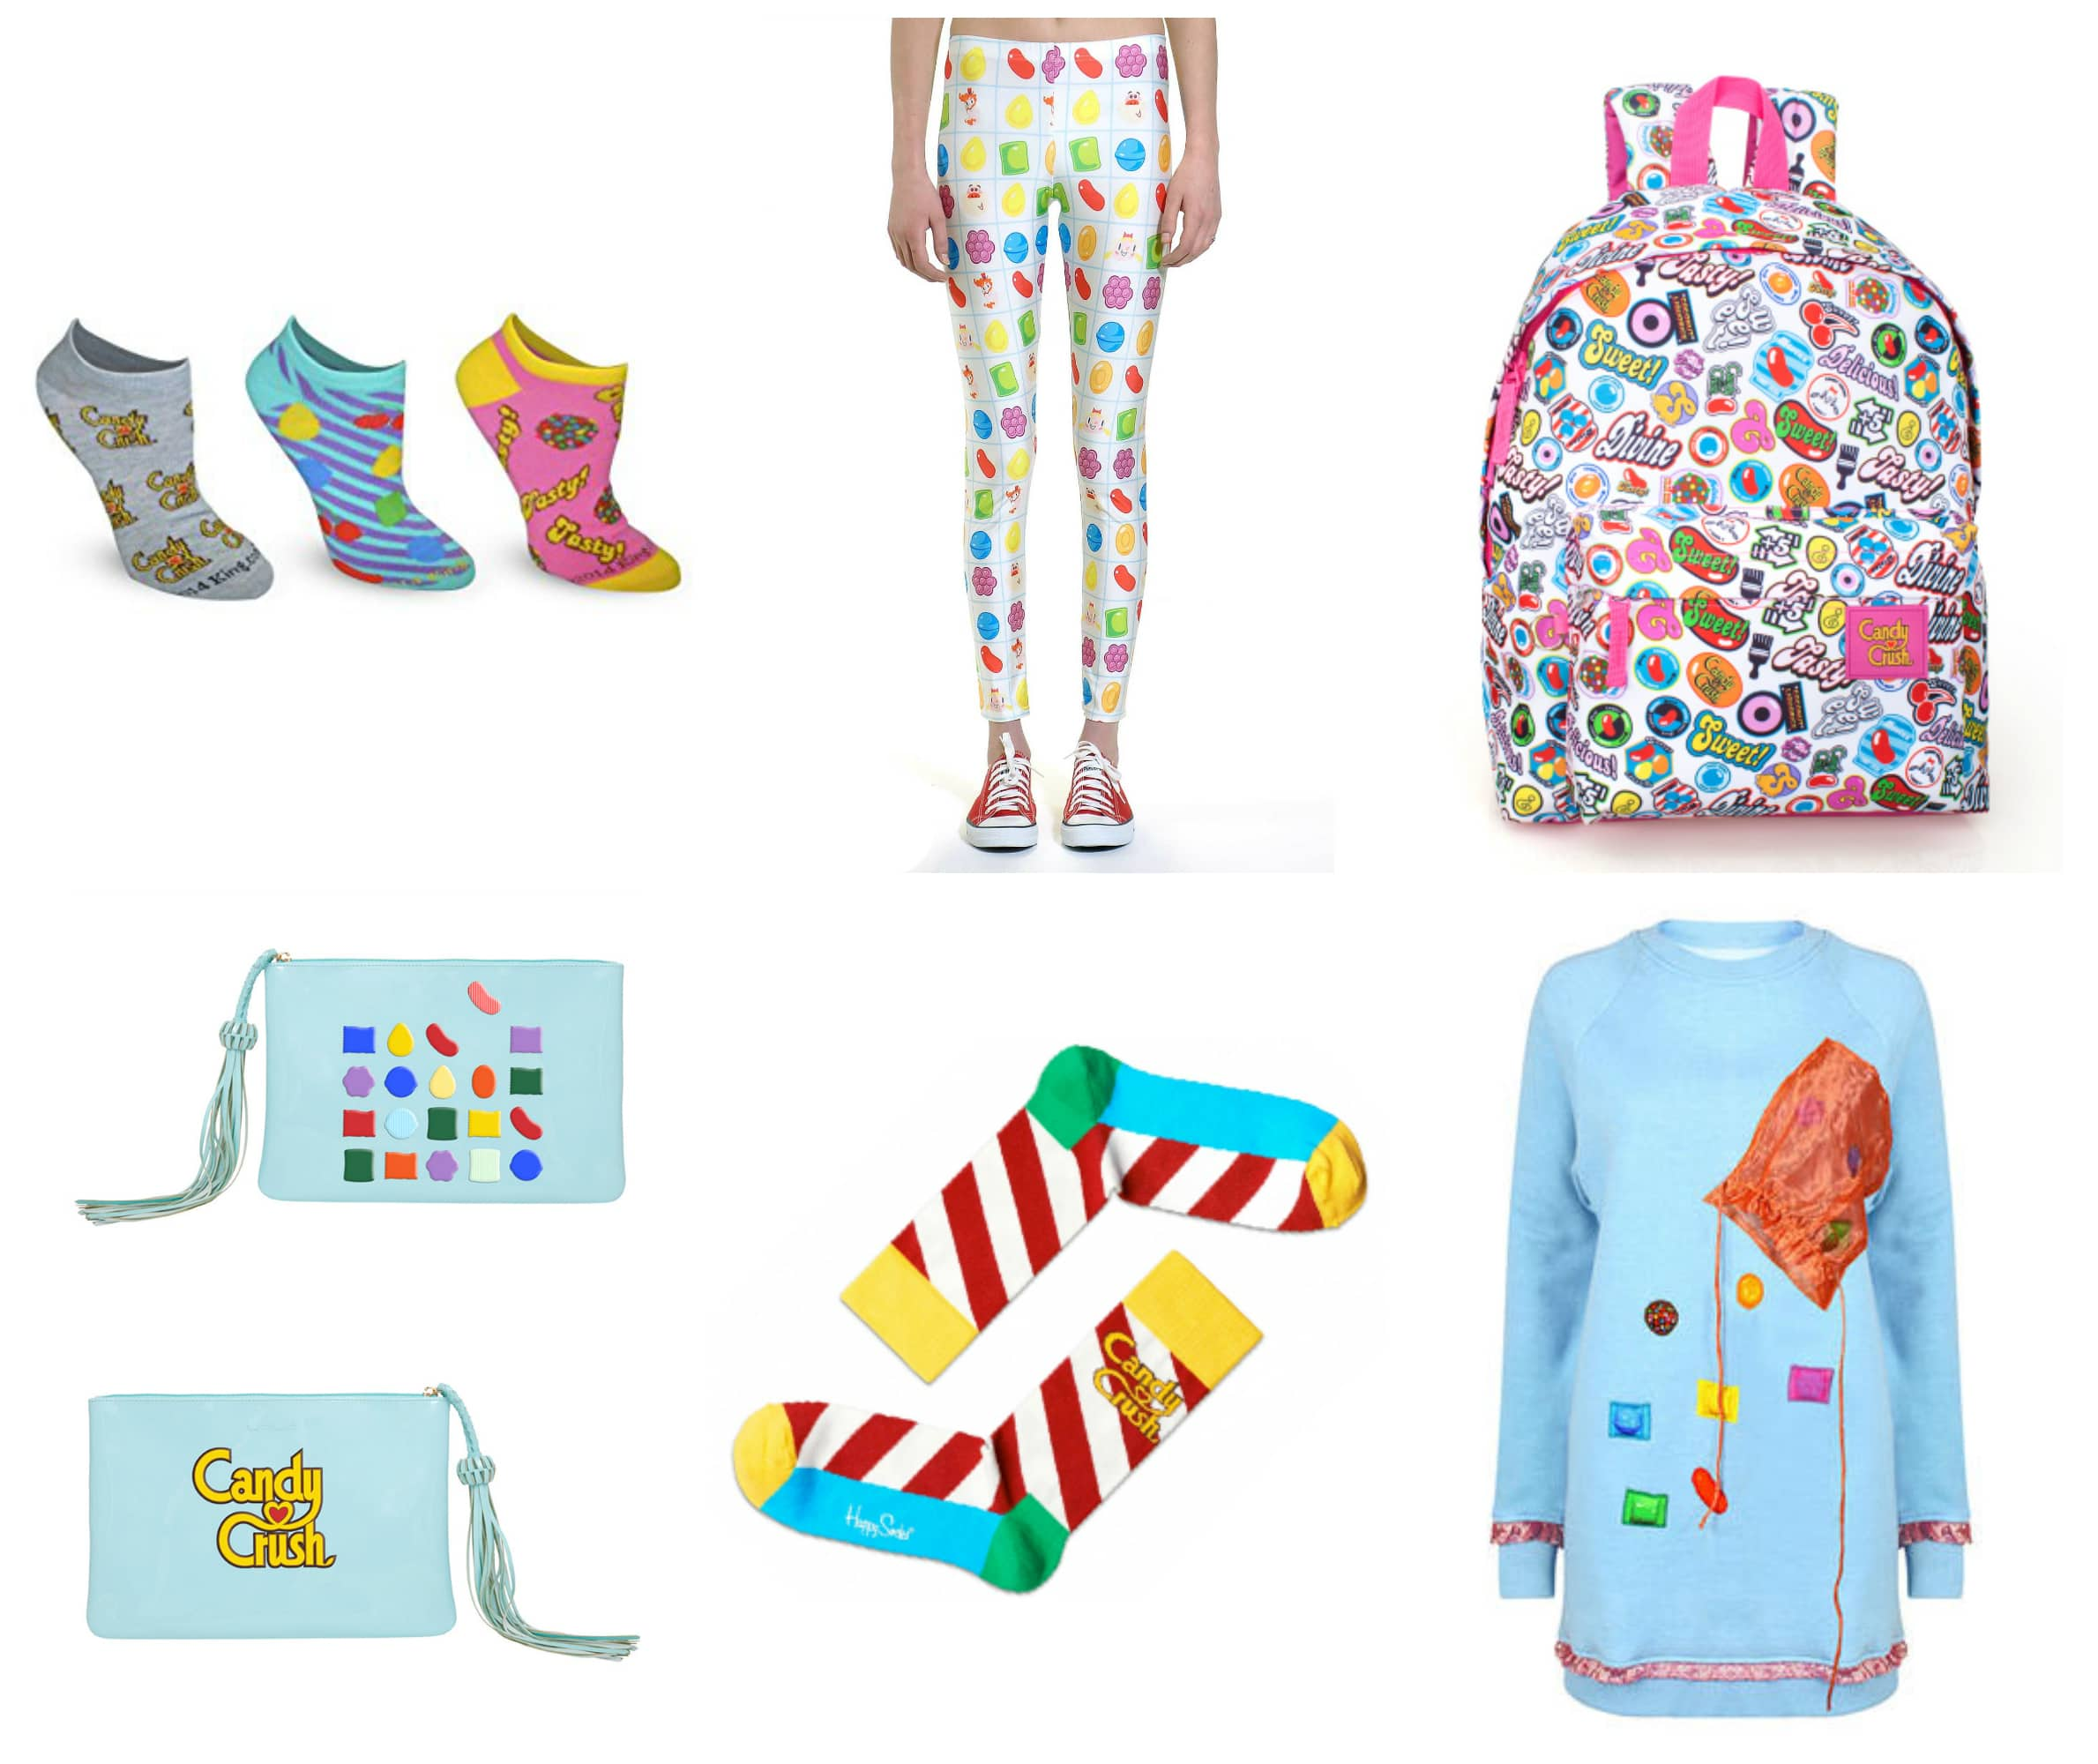 Candy Crush fashion collection.